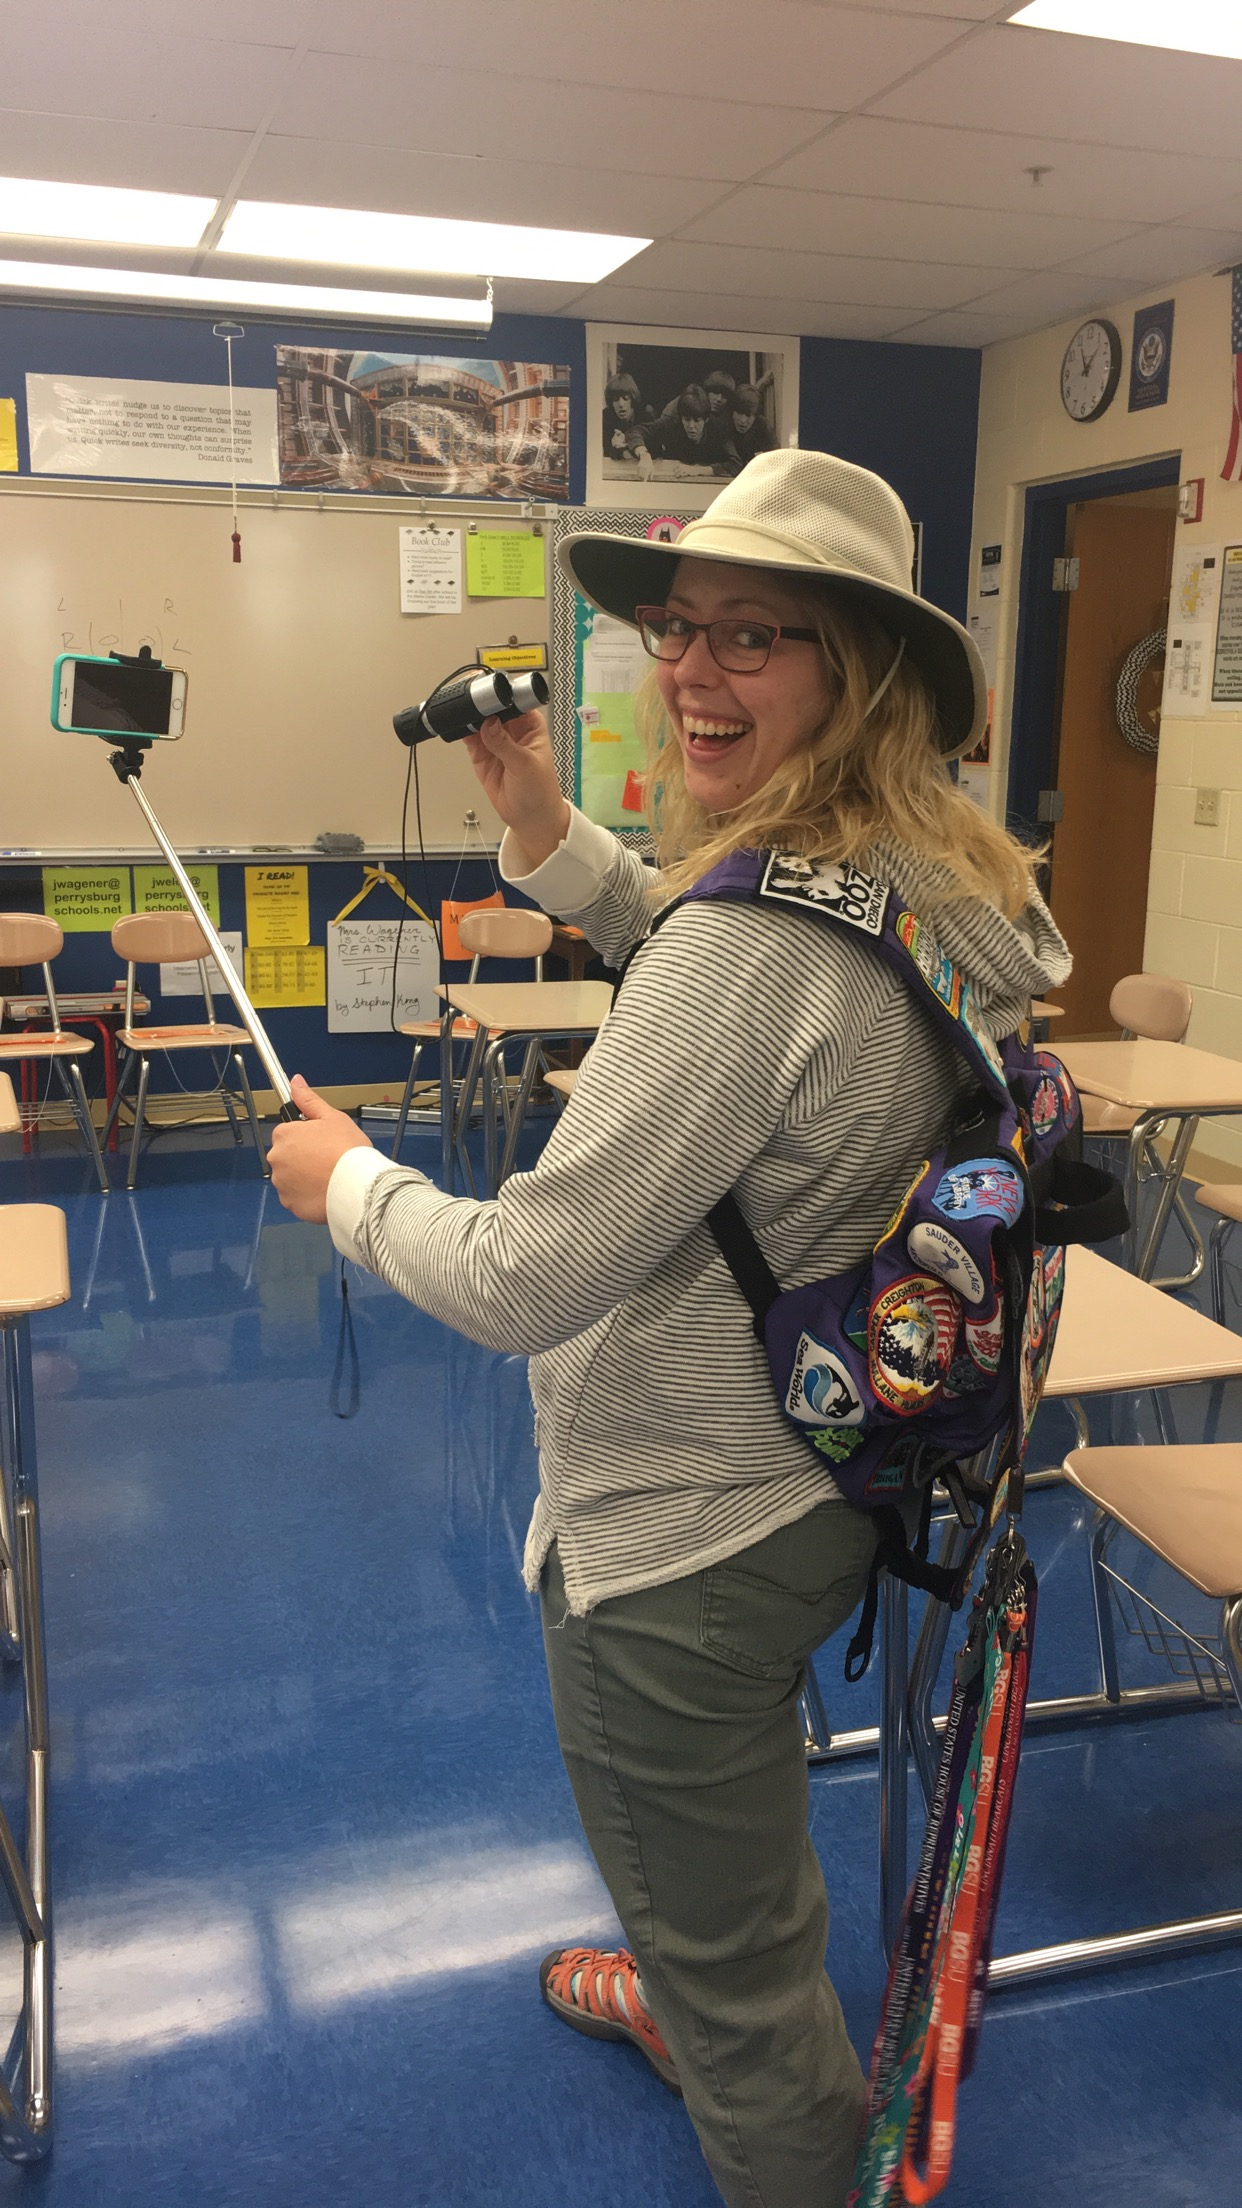 Spirit Week 2017: Tacky Tourist Wednesday